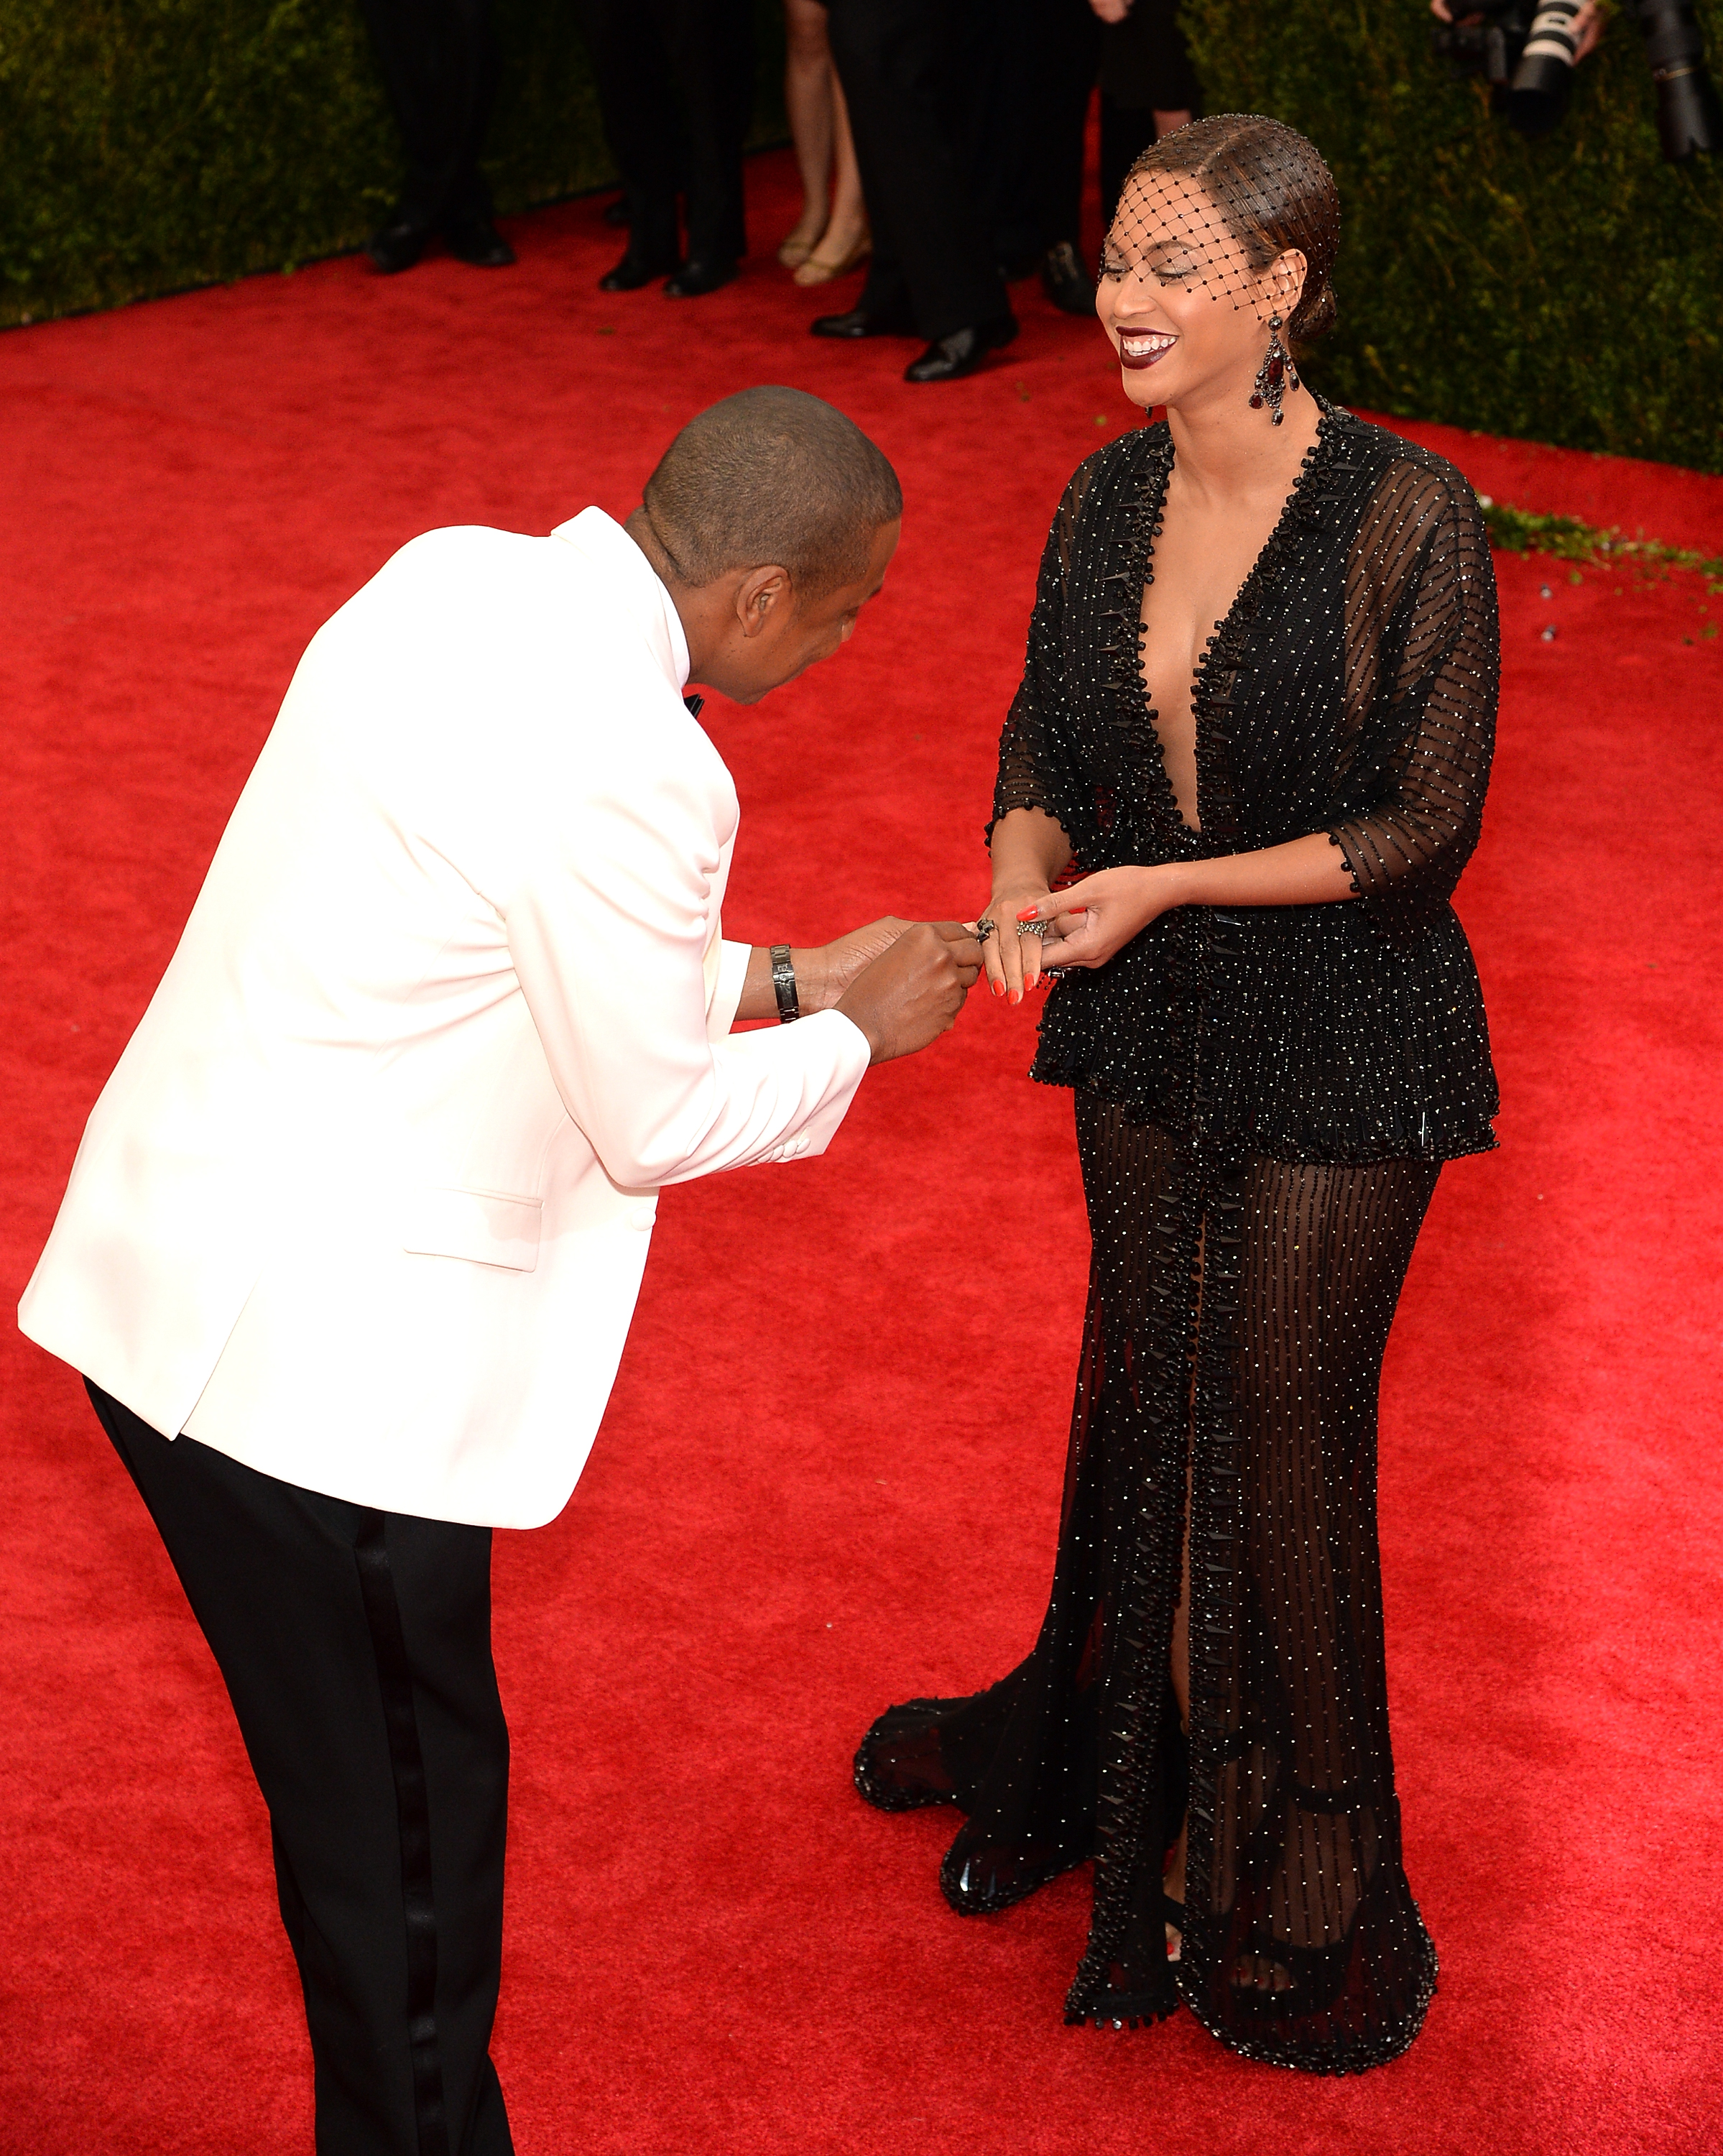 Jay Z and Beyoncé attend the 'Charles James: Beyond Fashion' Costume Institute Gala at the Metropolitan Museum of Art on May 5, 2014 in New York City.